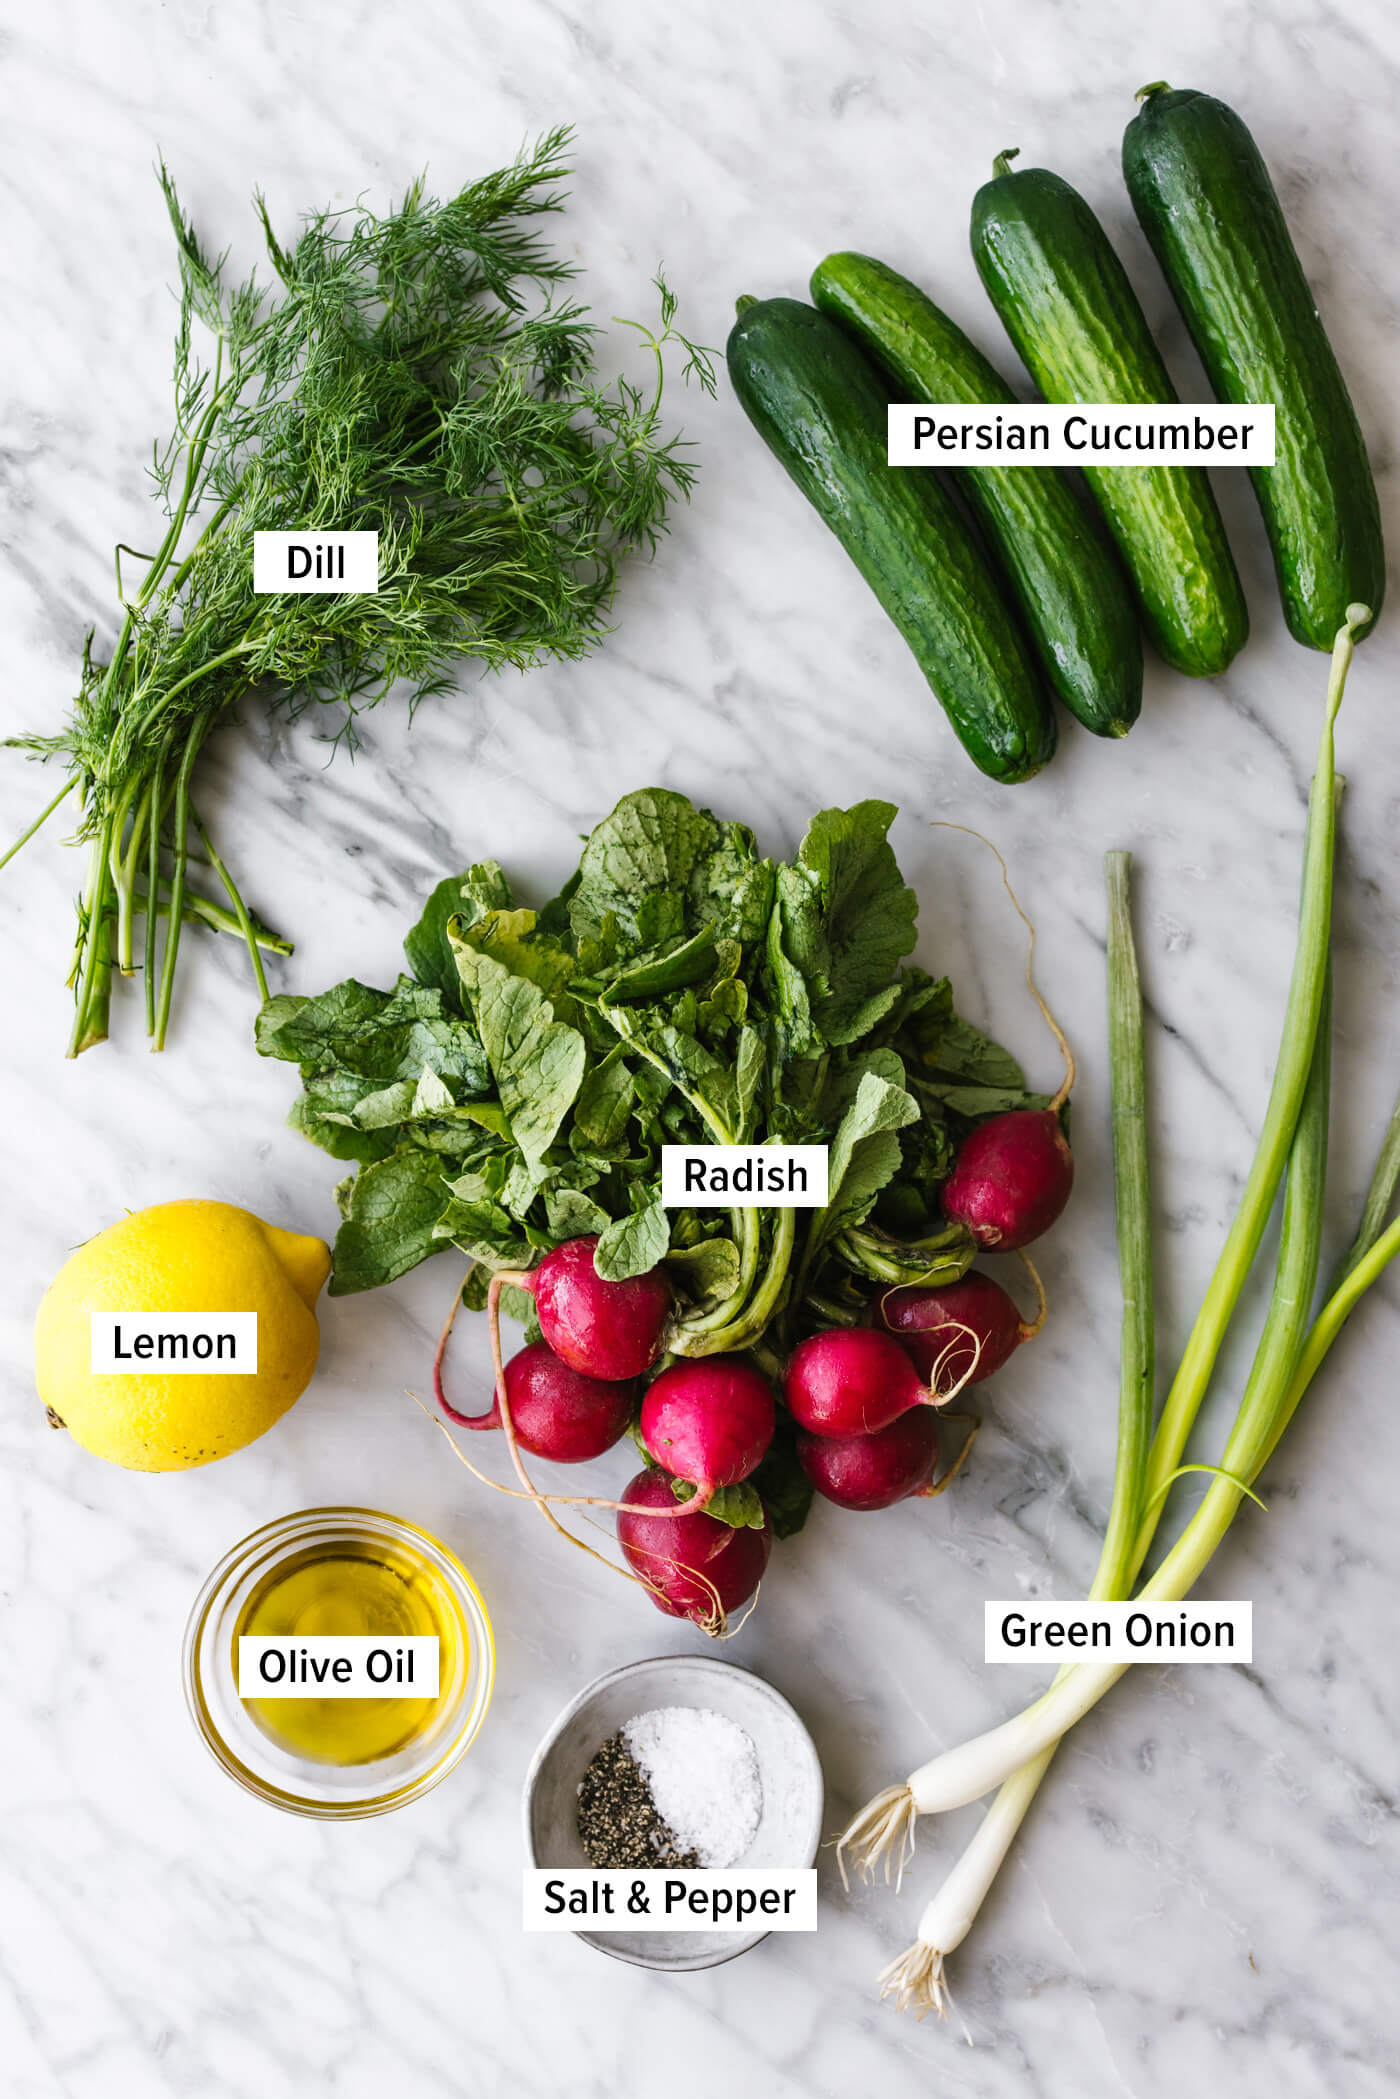 Ingredients for a cucumber radish salad on a table.